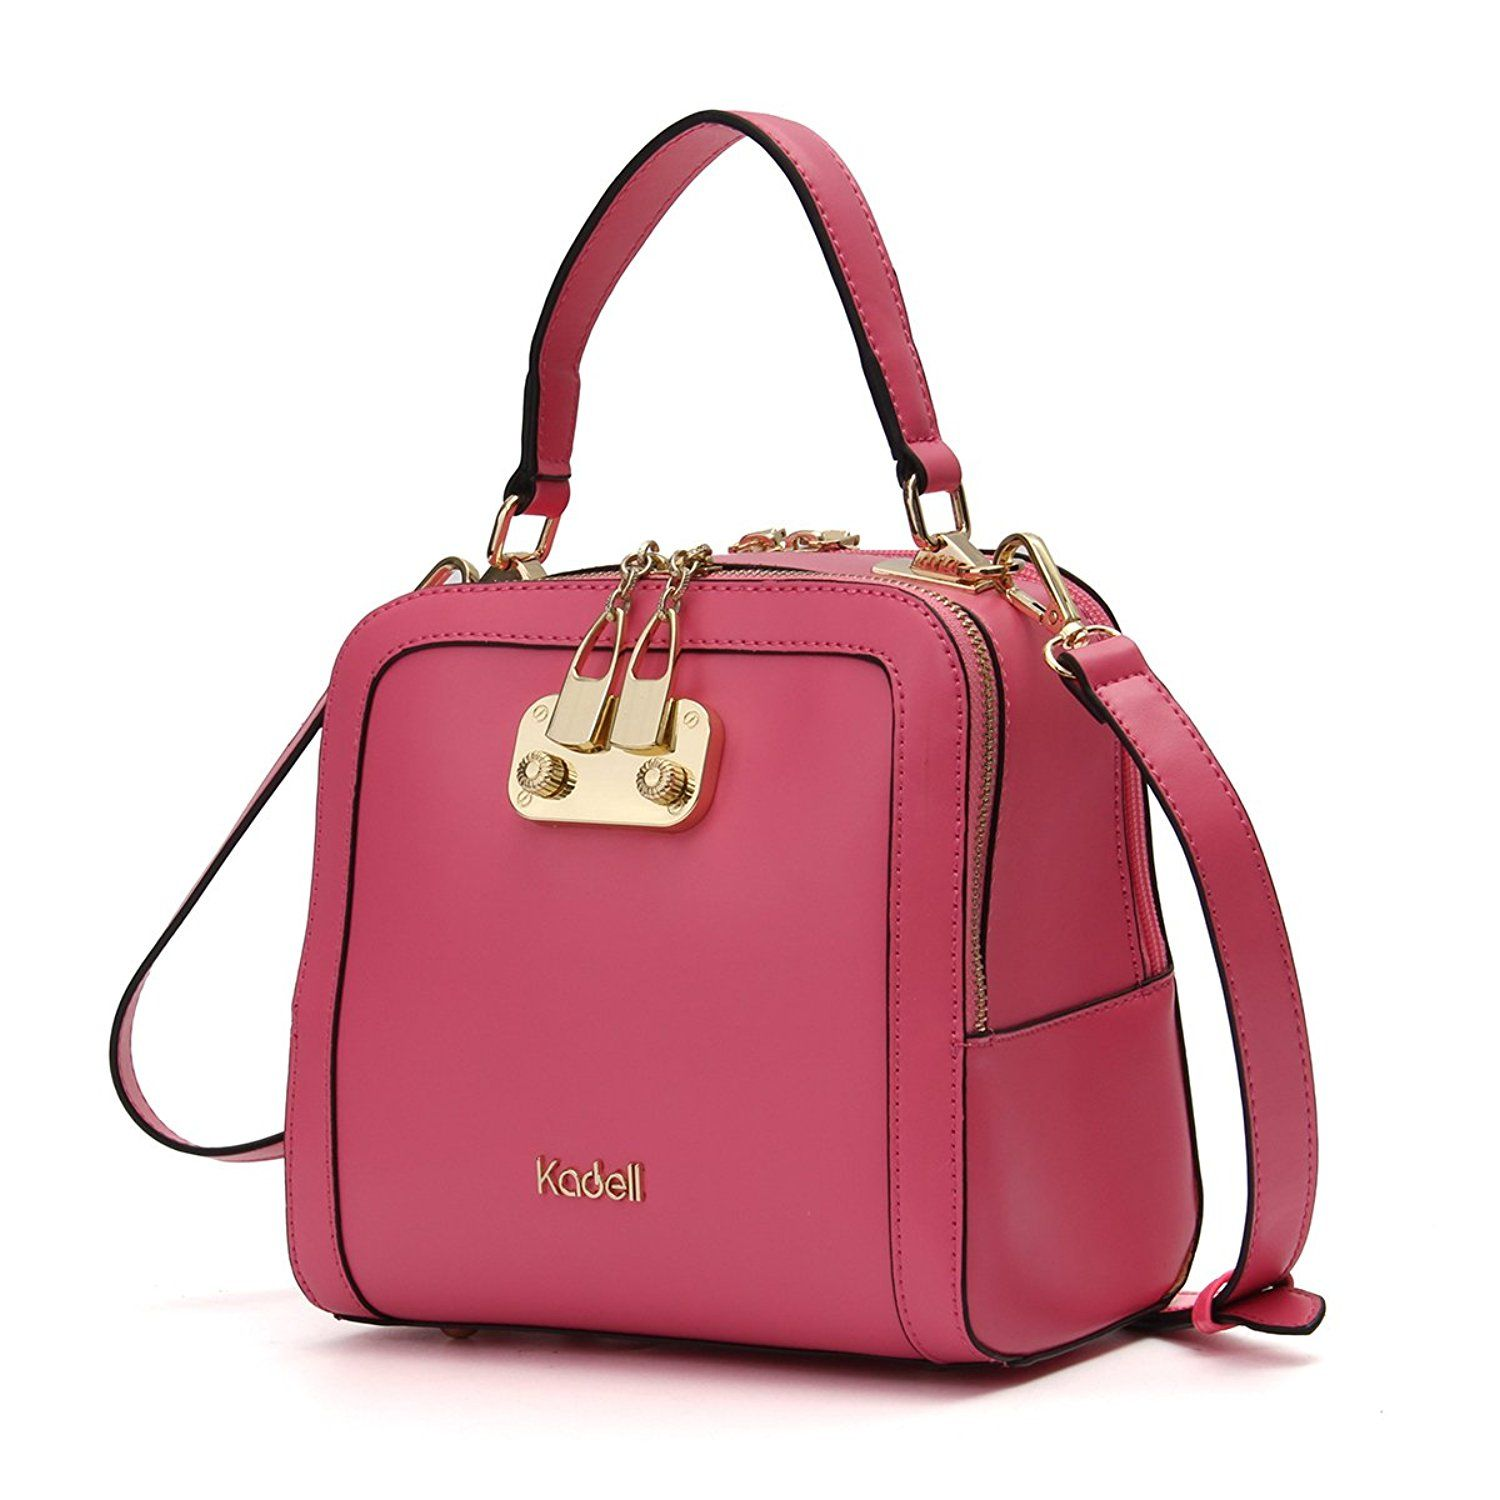 8076e9d13406 Kadell Women Leather Handbags Shell Shape Top Handle Purse with Removable  Strap Pink  Handbags  Amazon.com